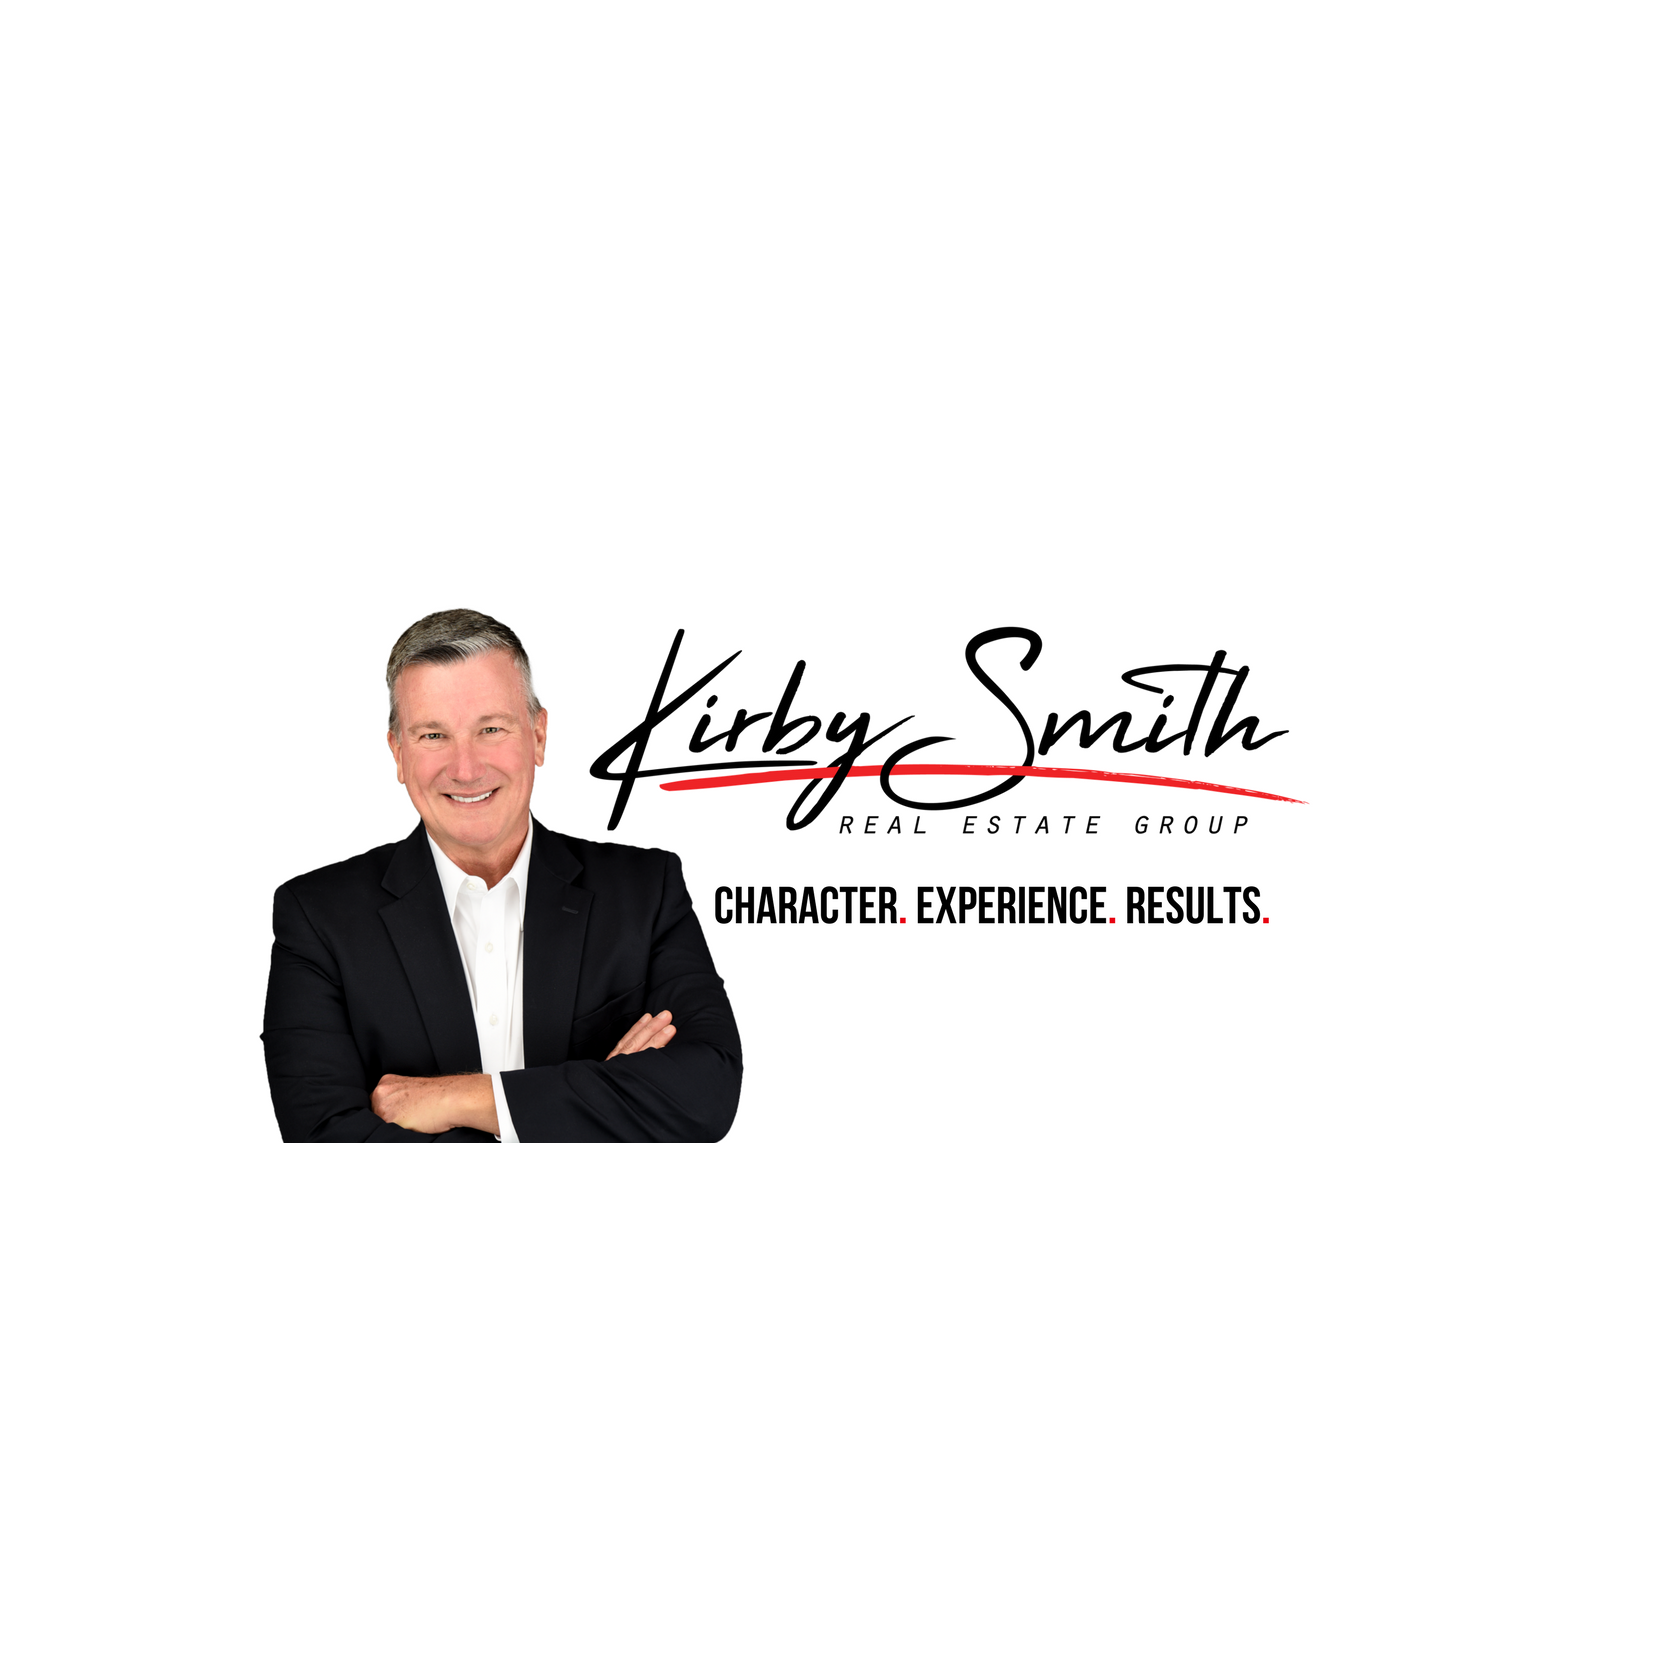 Kirby Smith Real Estate Group - Nederland, TX - Real Estate Agents